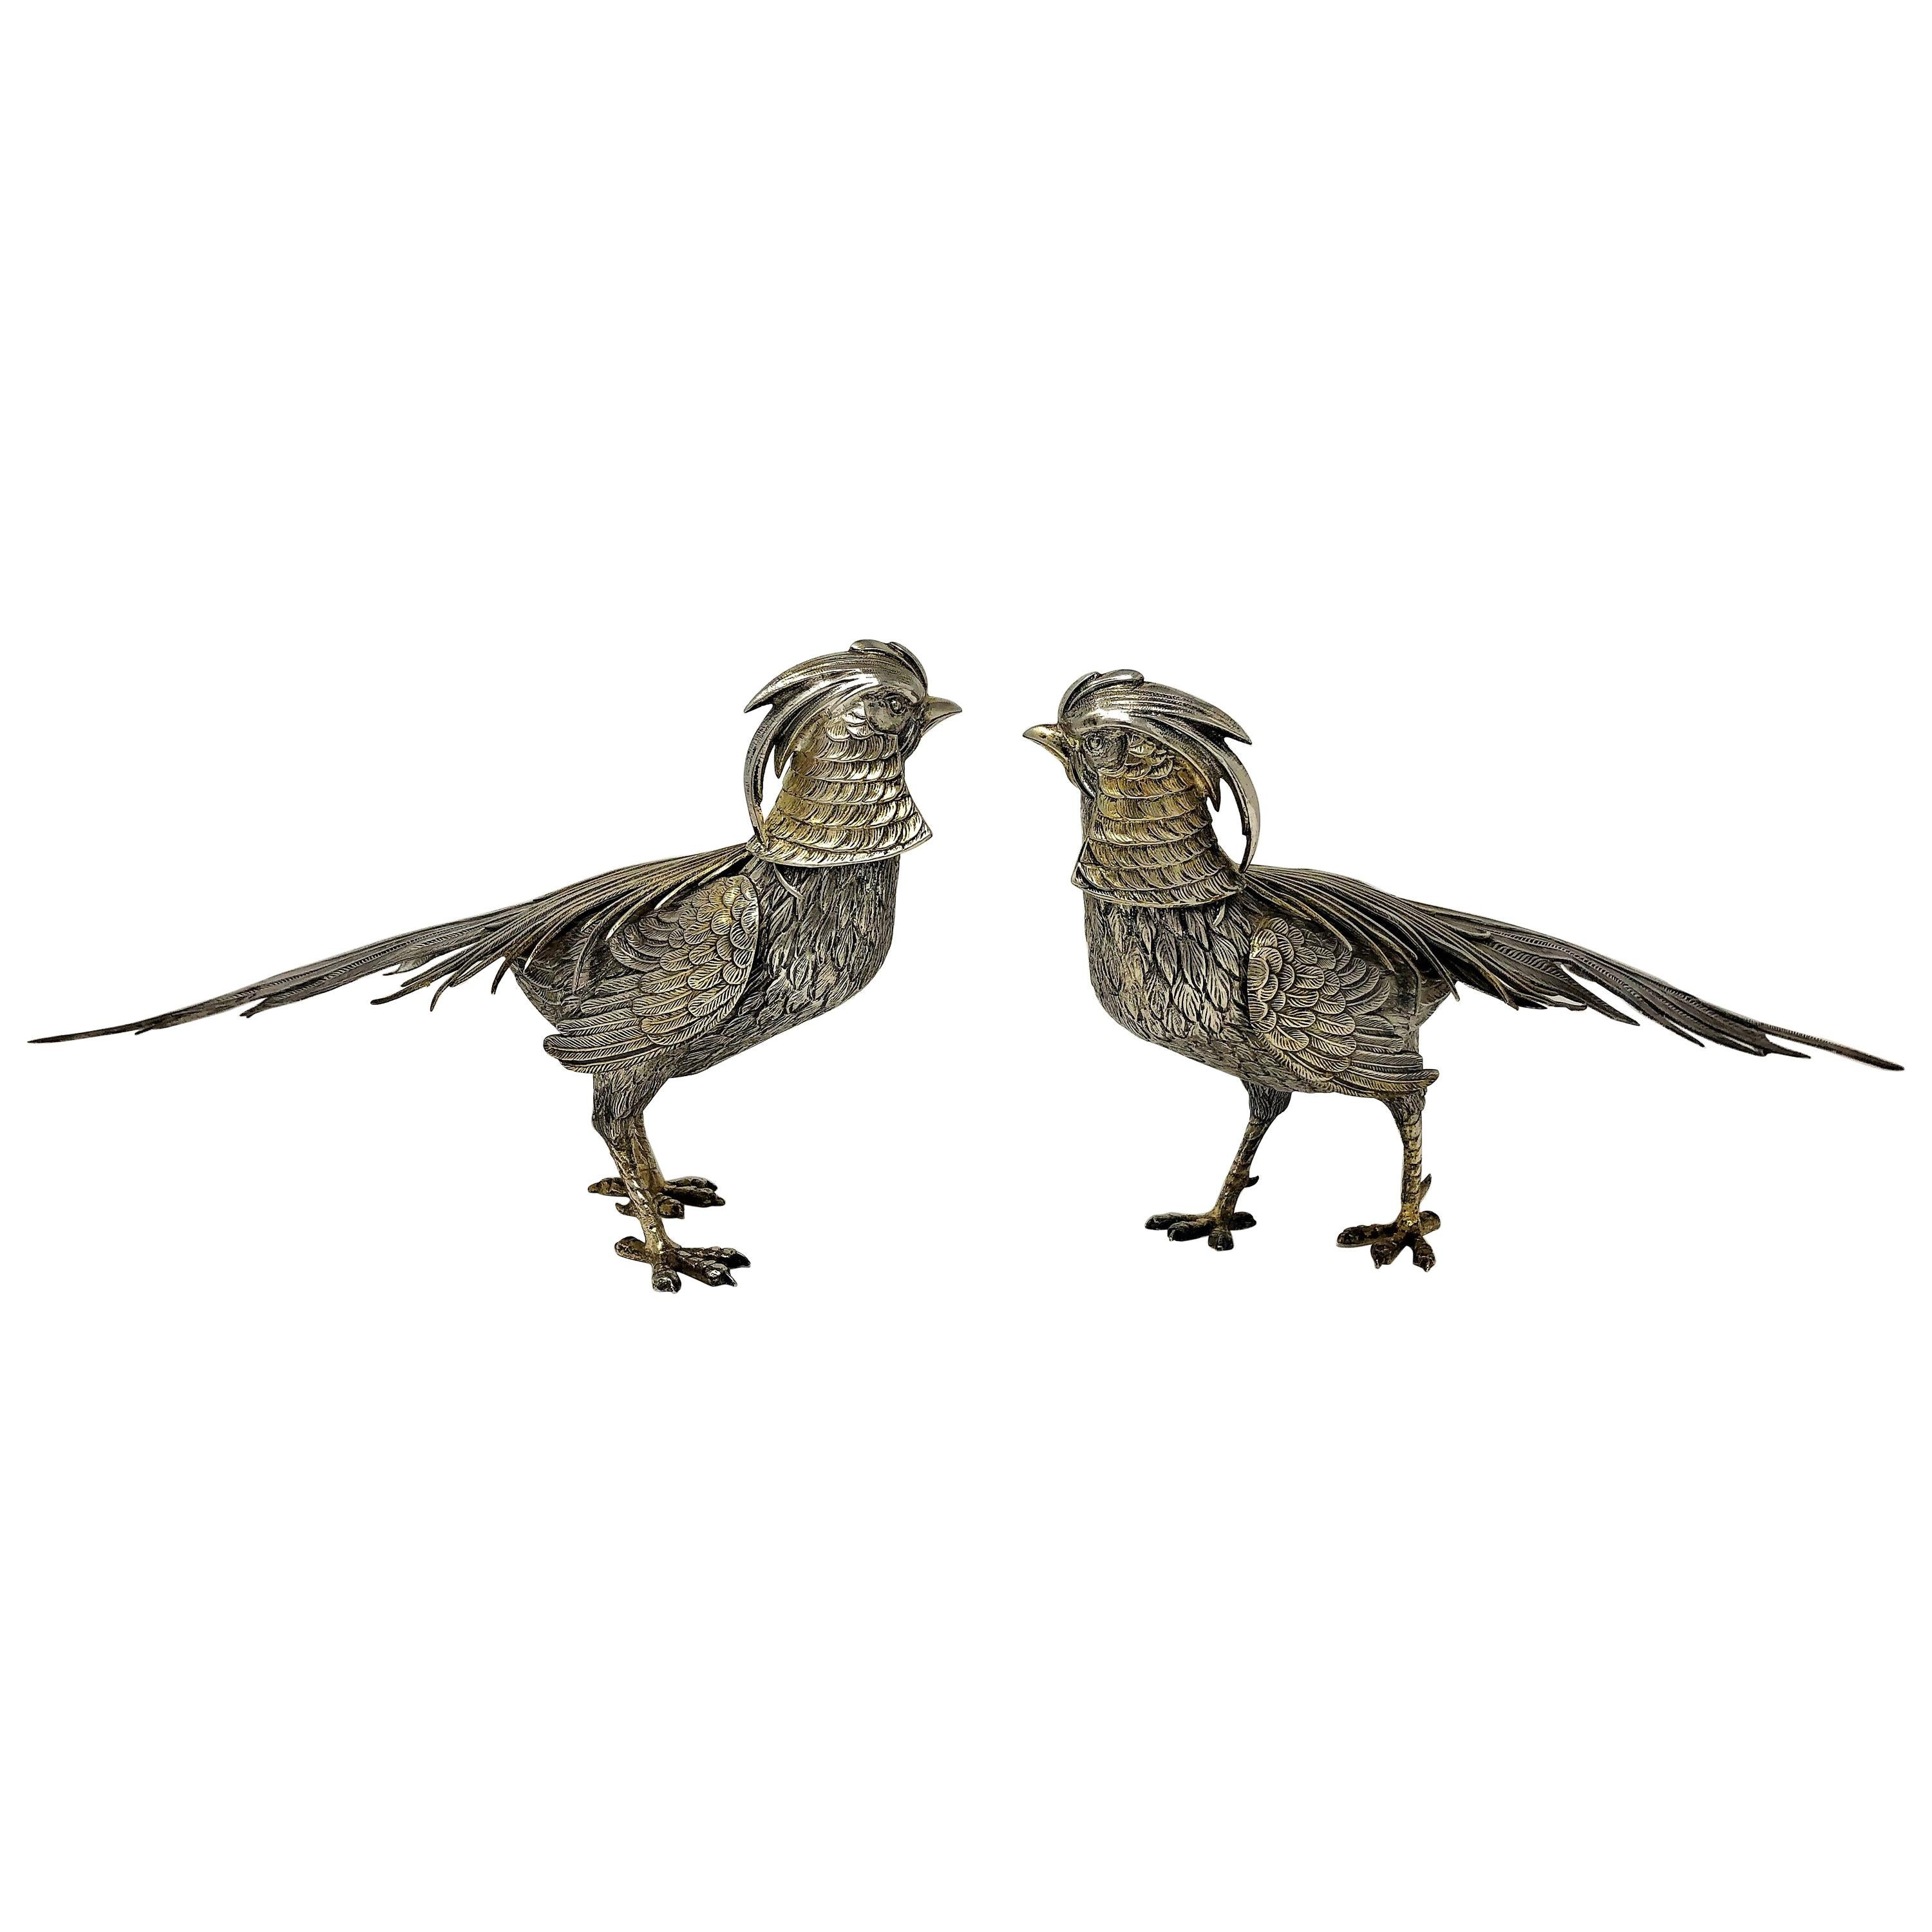 Pair of Antique Sterling Silver Chinese Golden Pheasants, circa 1920-1930